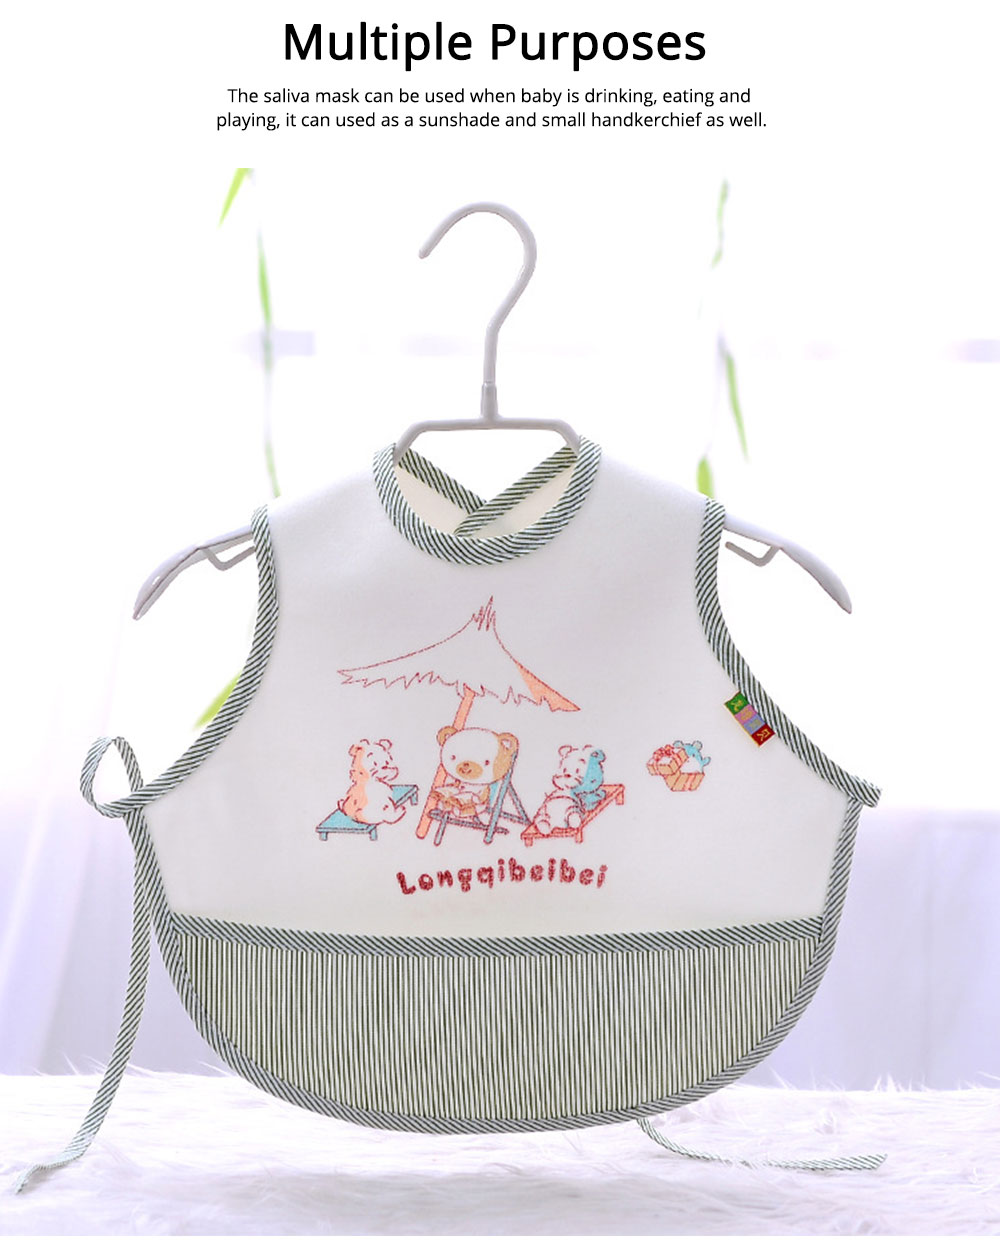 Velvet Material Bib for Baby Double-sided Mask with Bottom Pocket Buckle Saliva Cover Waterproof Baby Saliva Towel 5